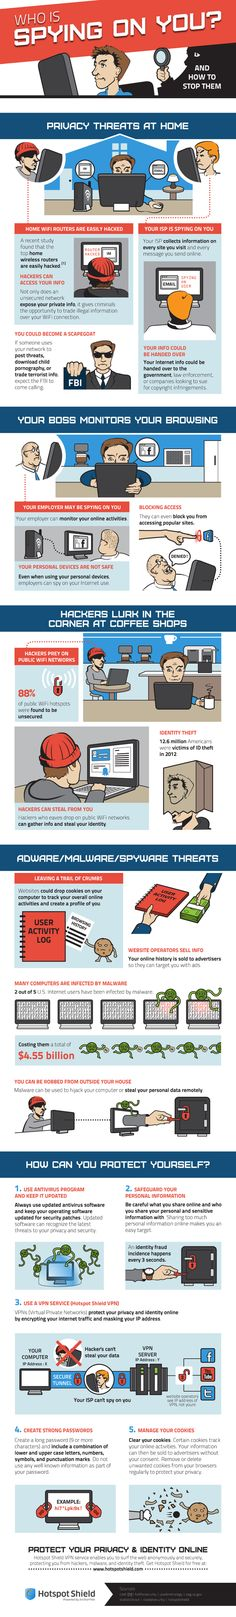 Safe Surfing - Who is Spying on You? And How to Stop Them